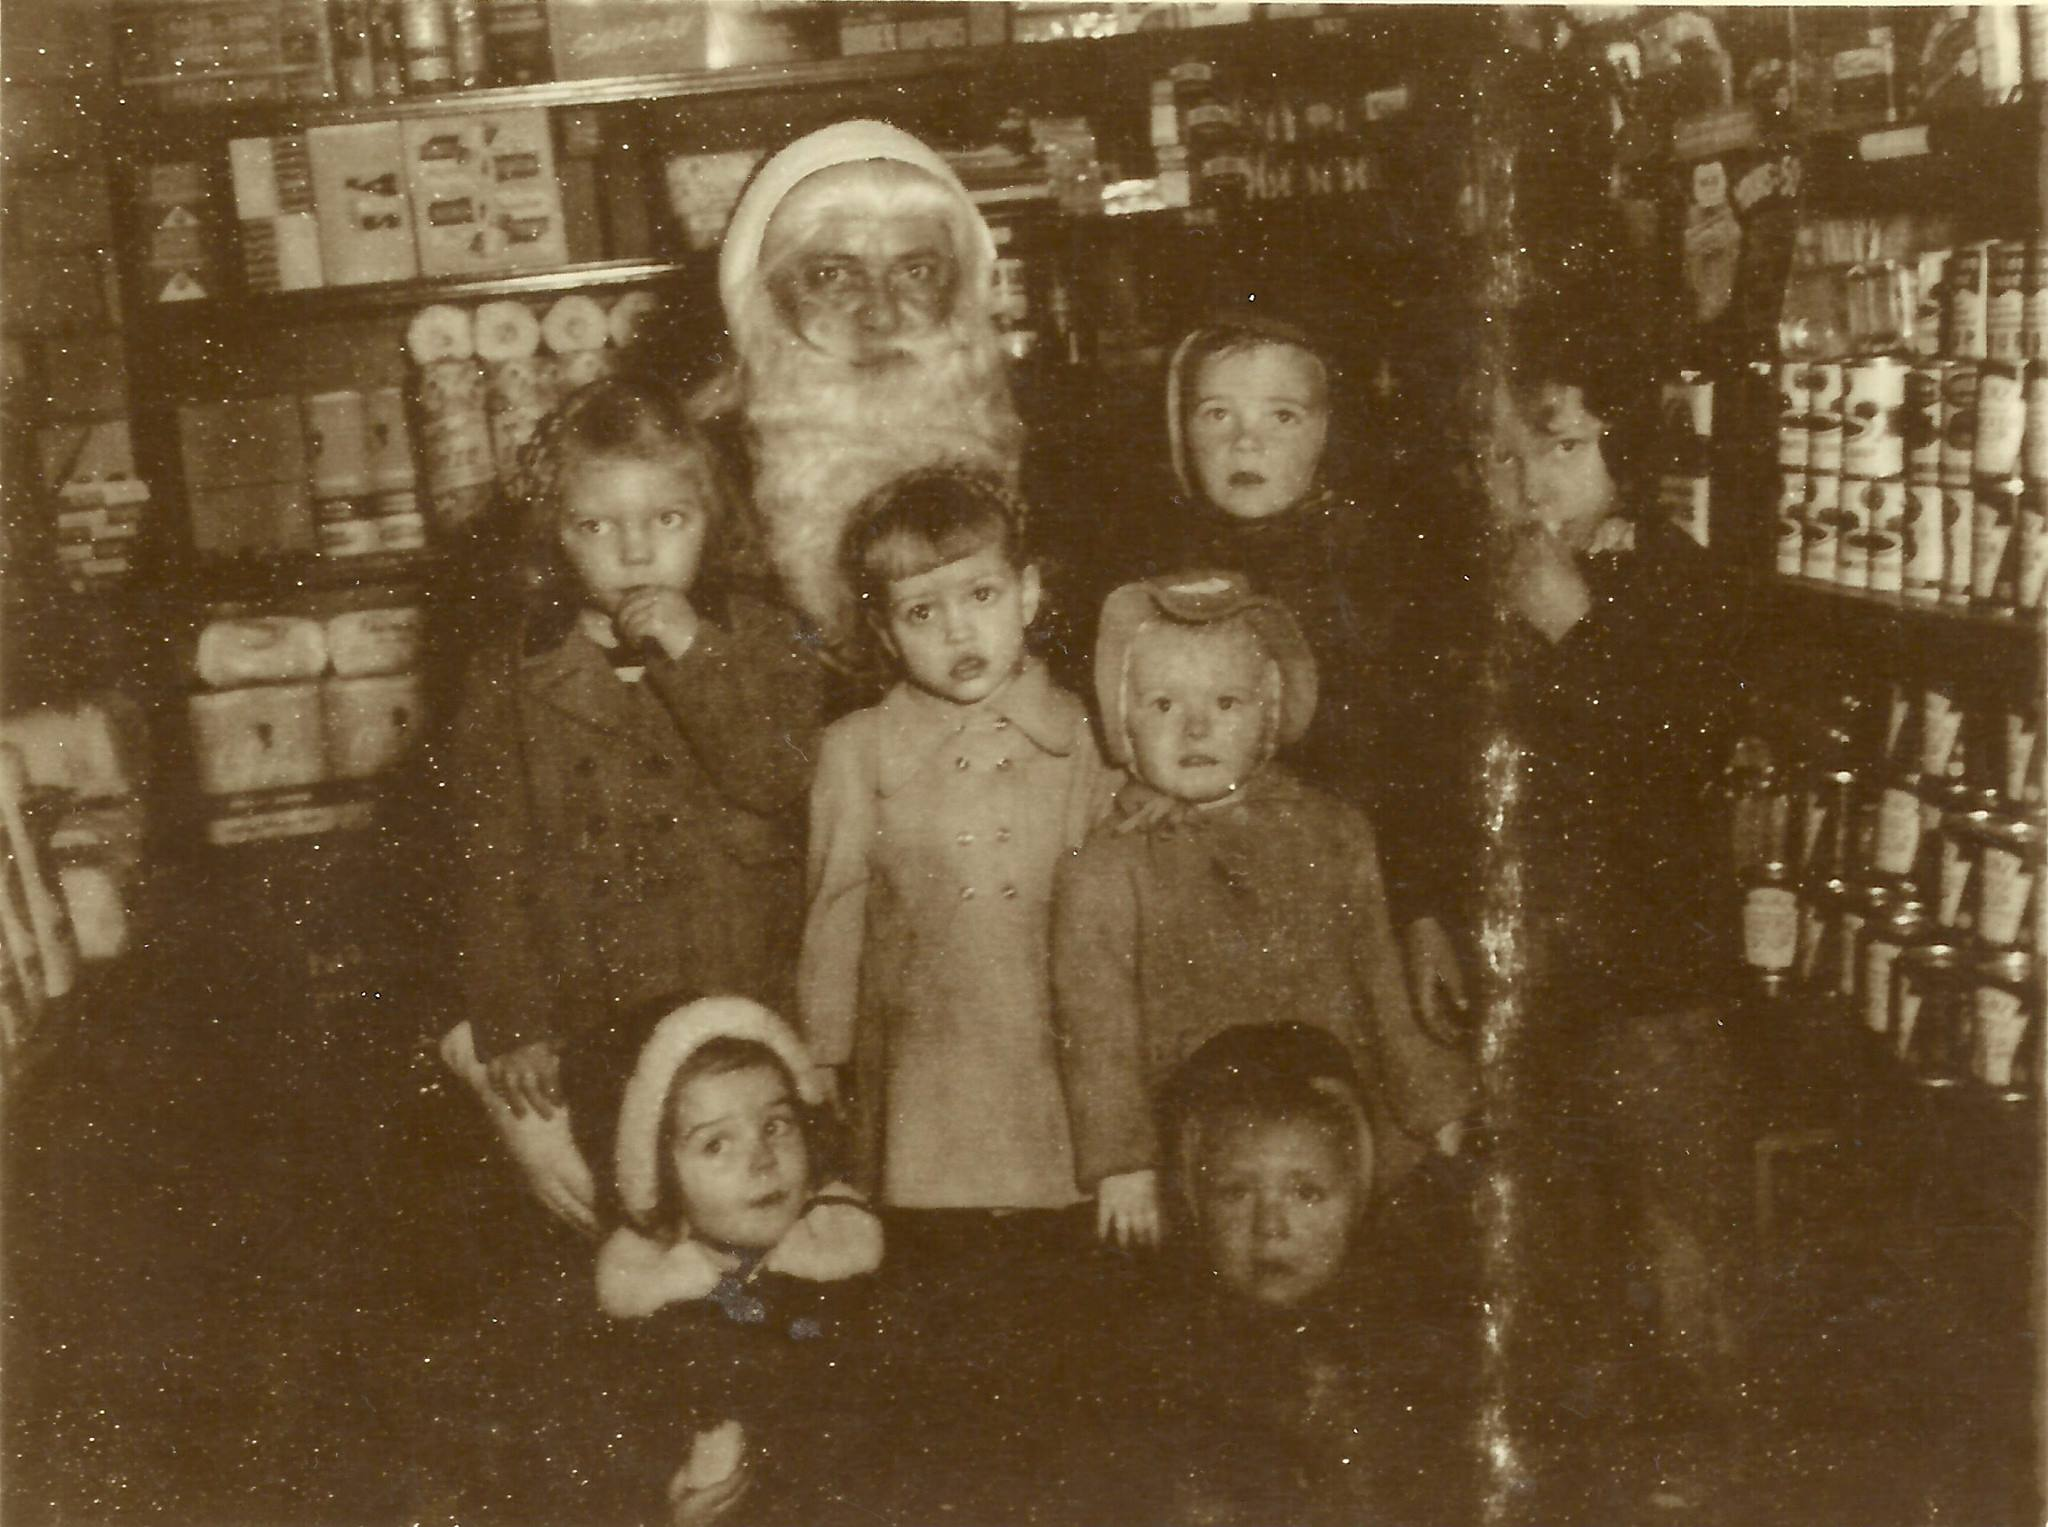 MUSIC INDEX & OUR PARSONS SANTA CLAUS & ME AT CHRISTMAS 1949